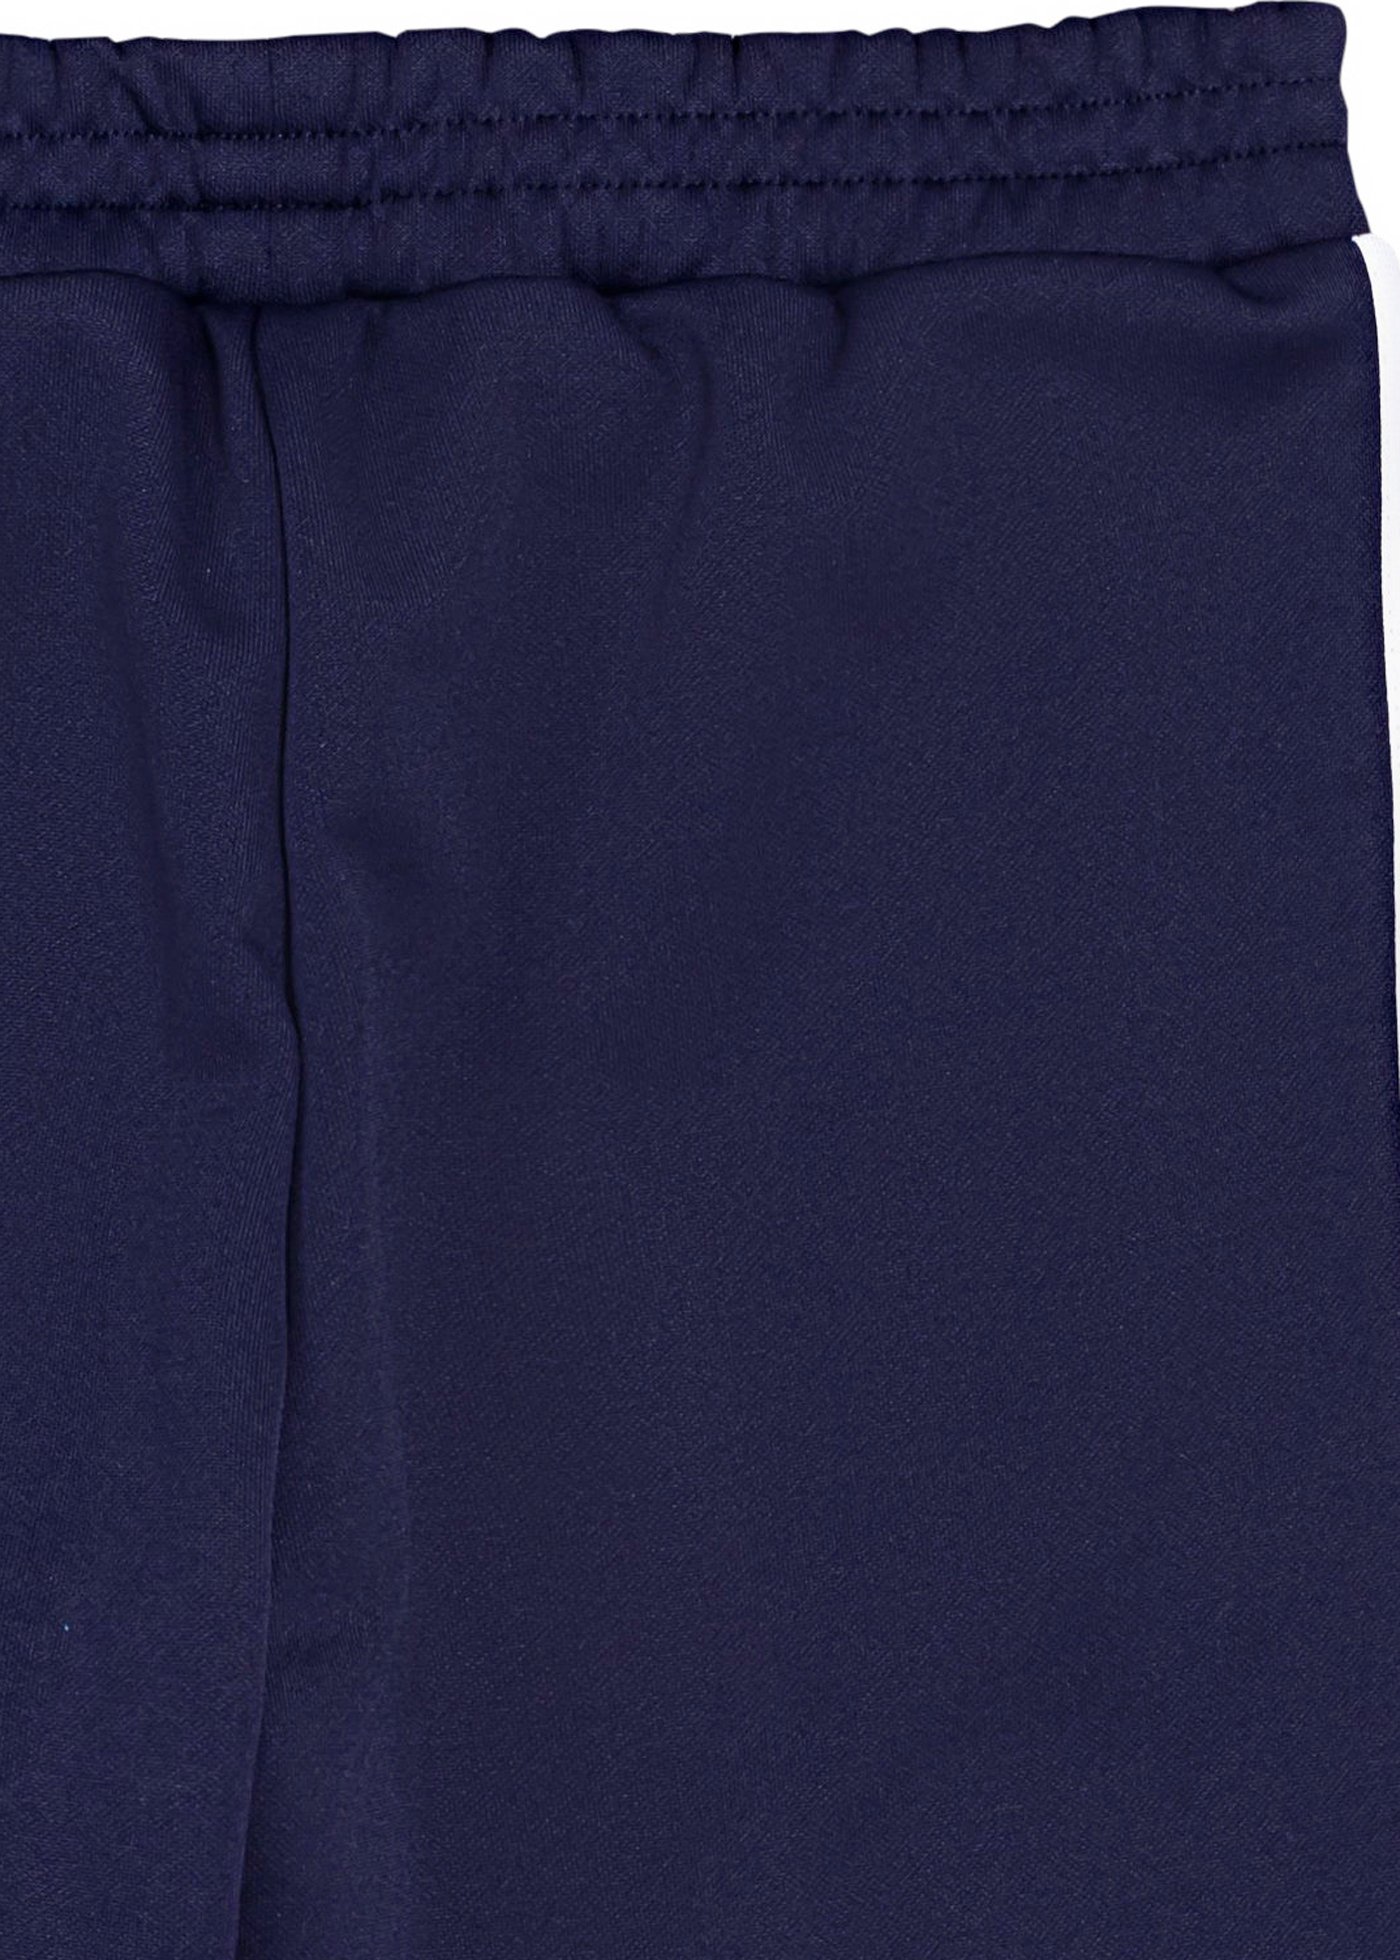 CLASSIC LOGO TRACK PANT image number 3